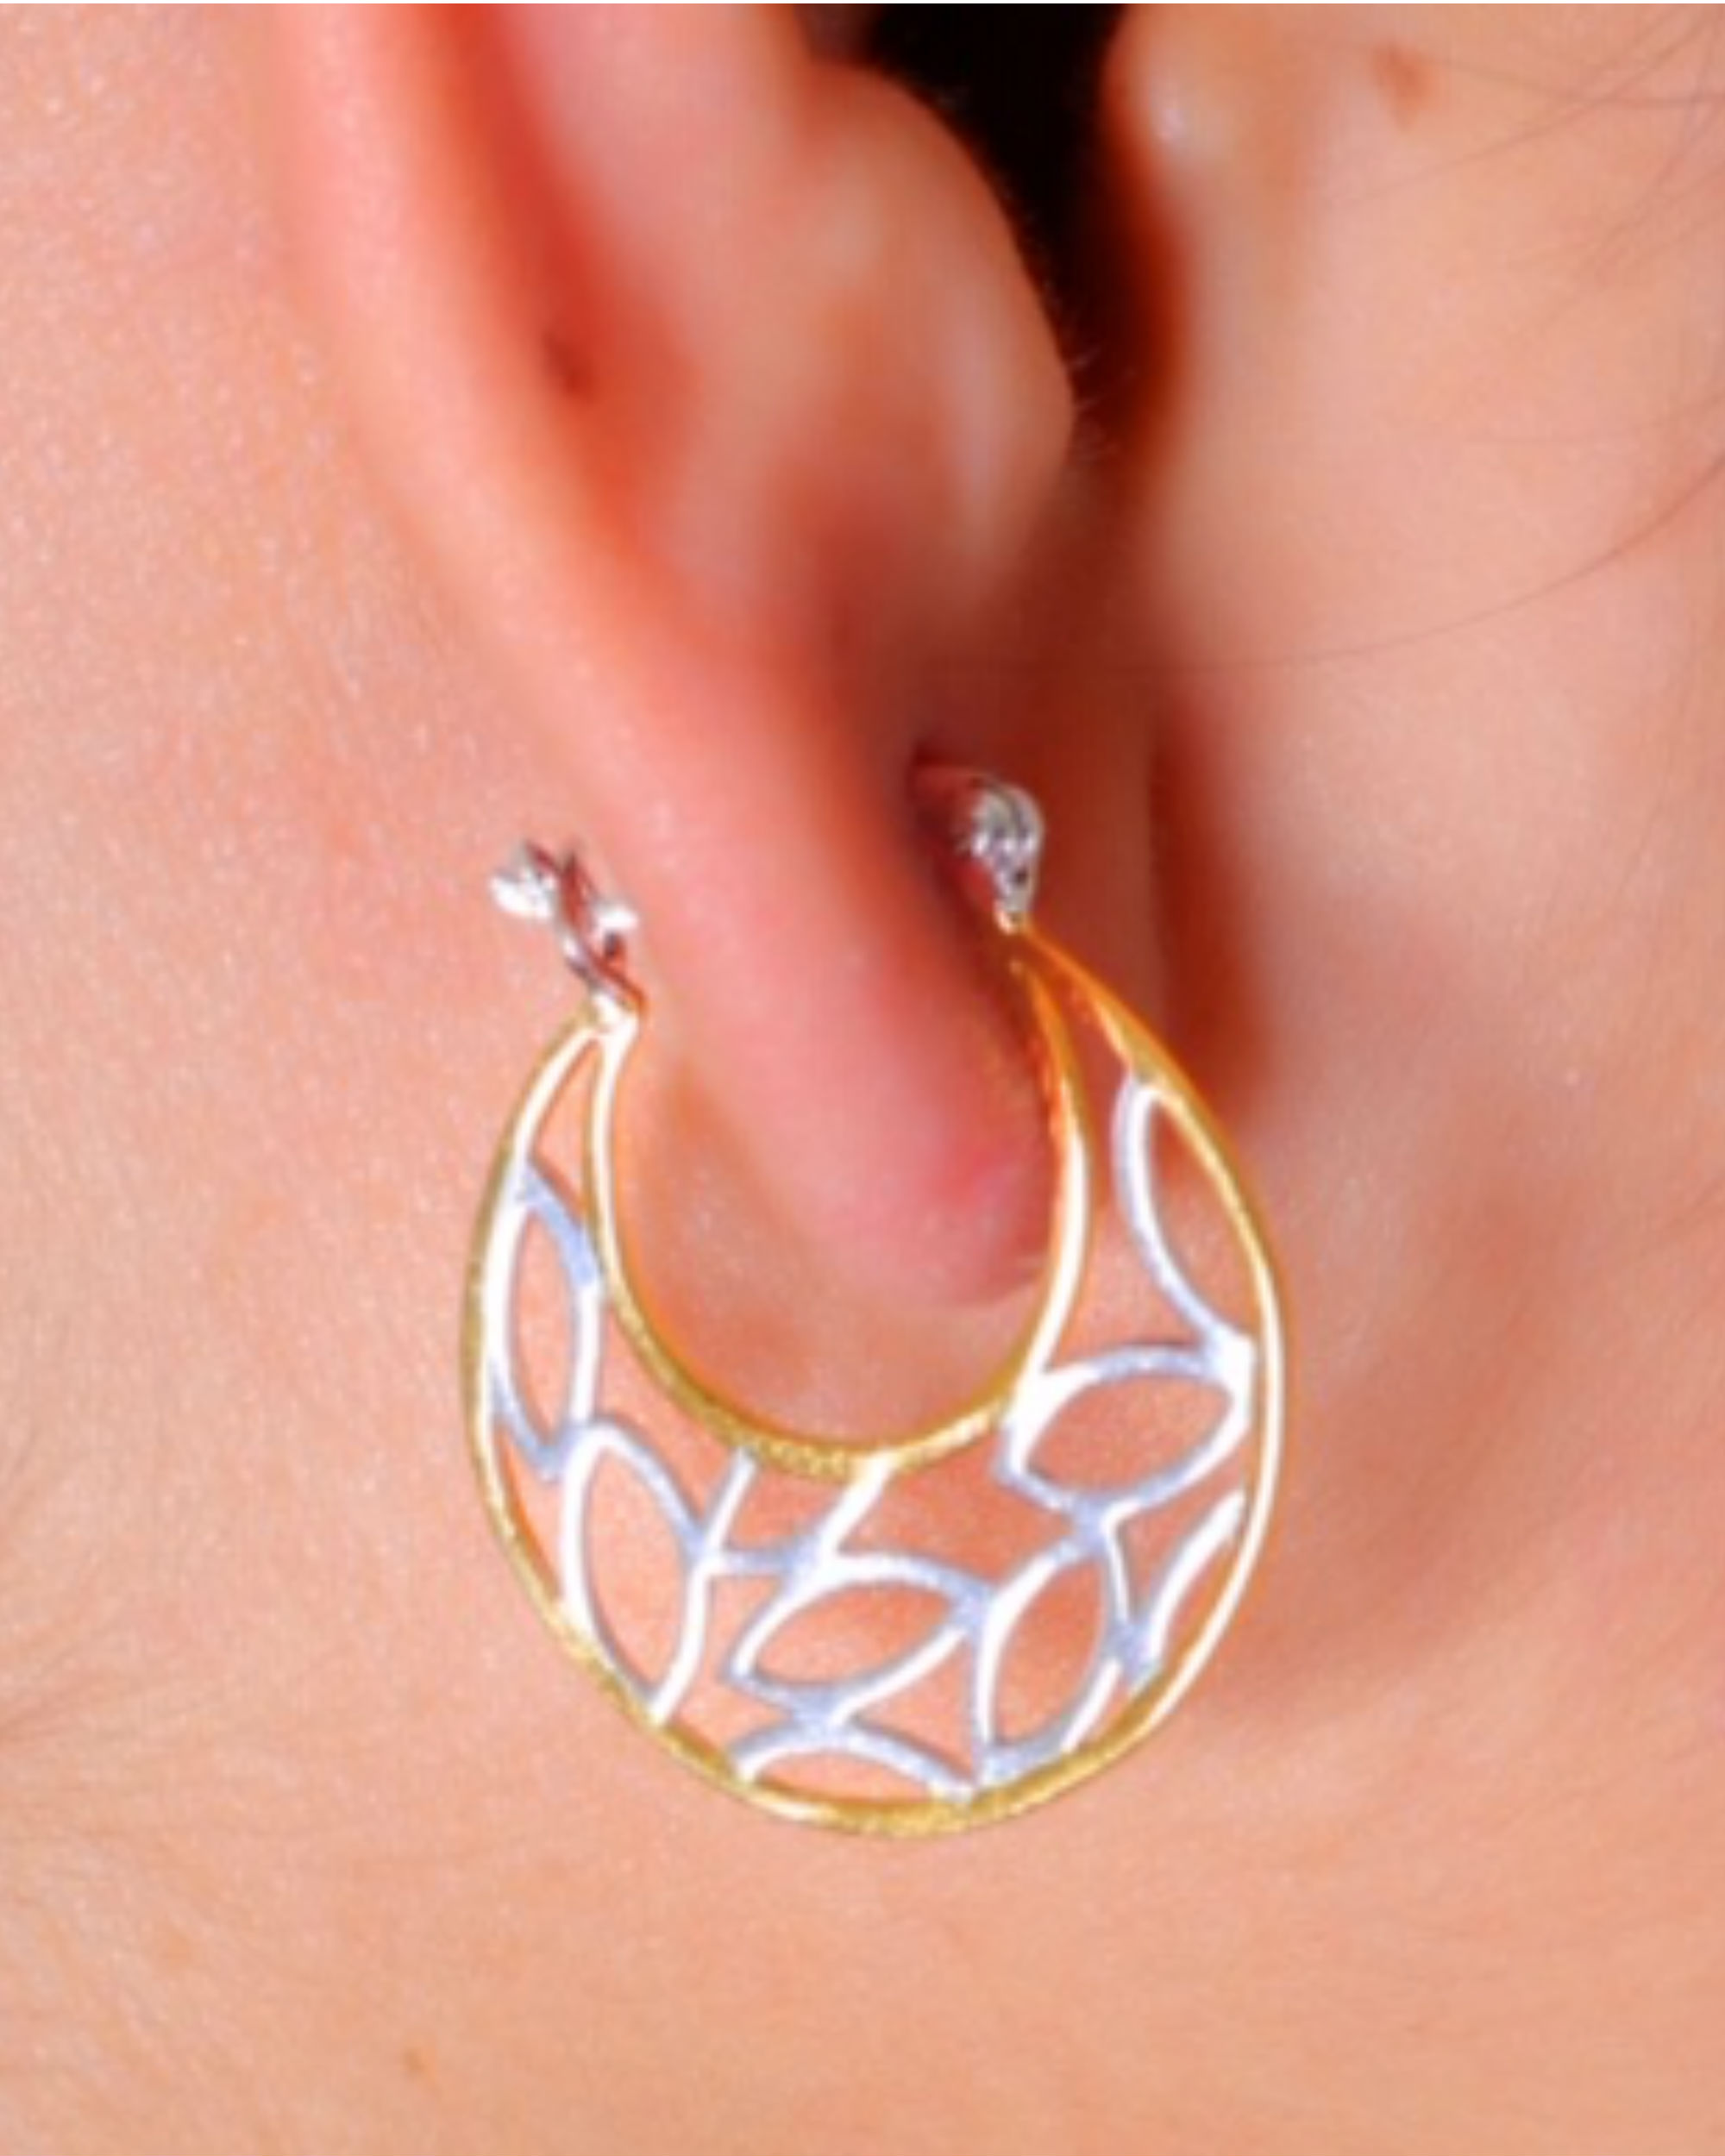 Twin color hoop earrings